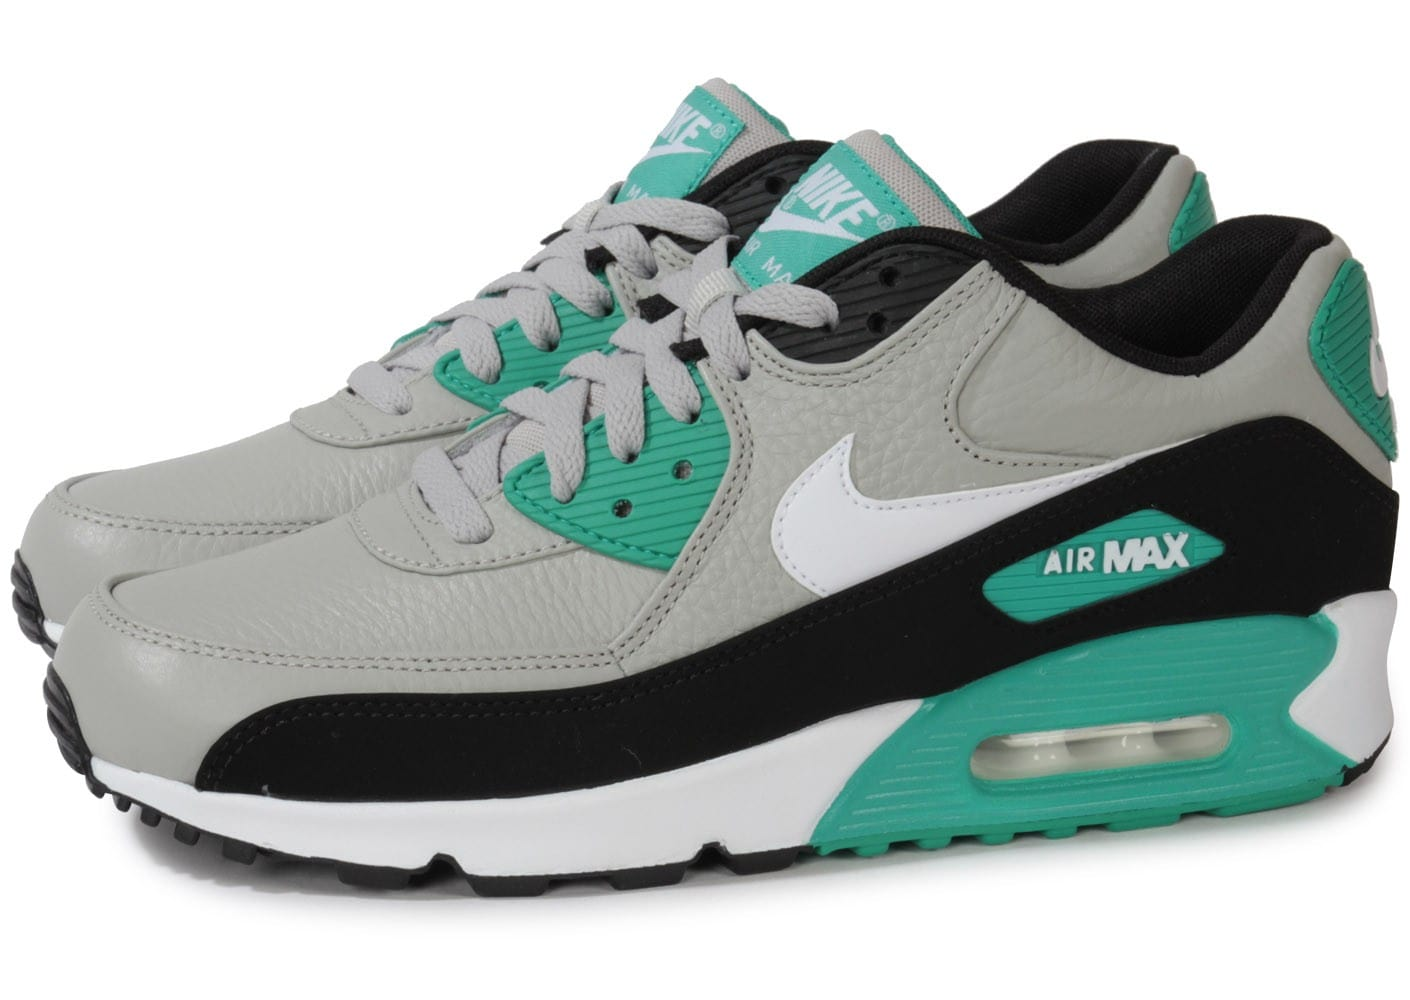 nike air max 90 leather grise chaussures homme chausport. Black Bedroom Furniture Sets. Home Design Ideas